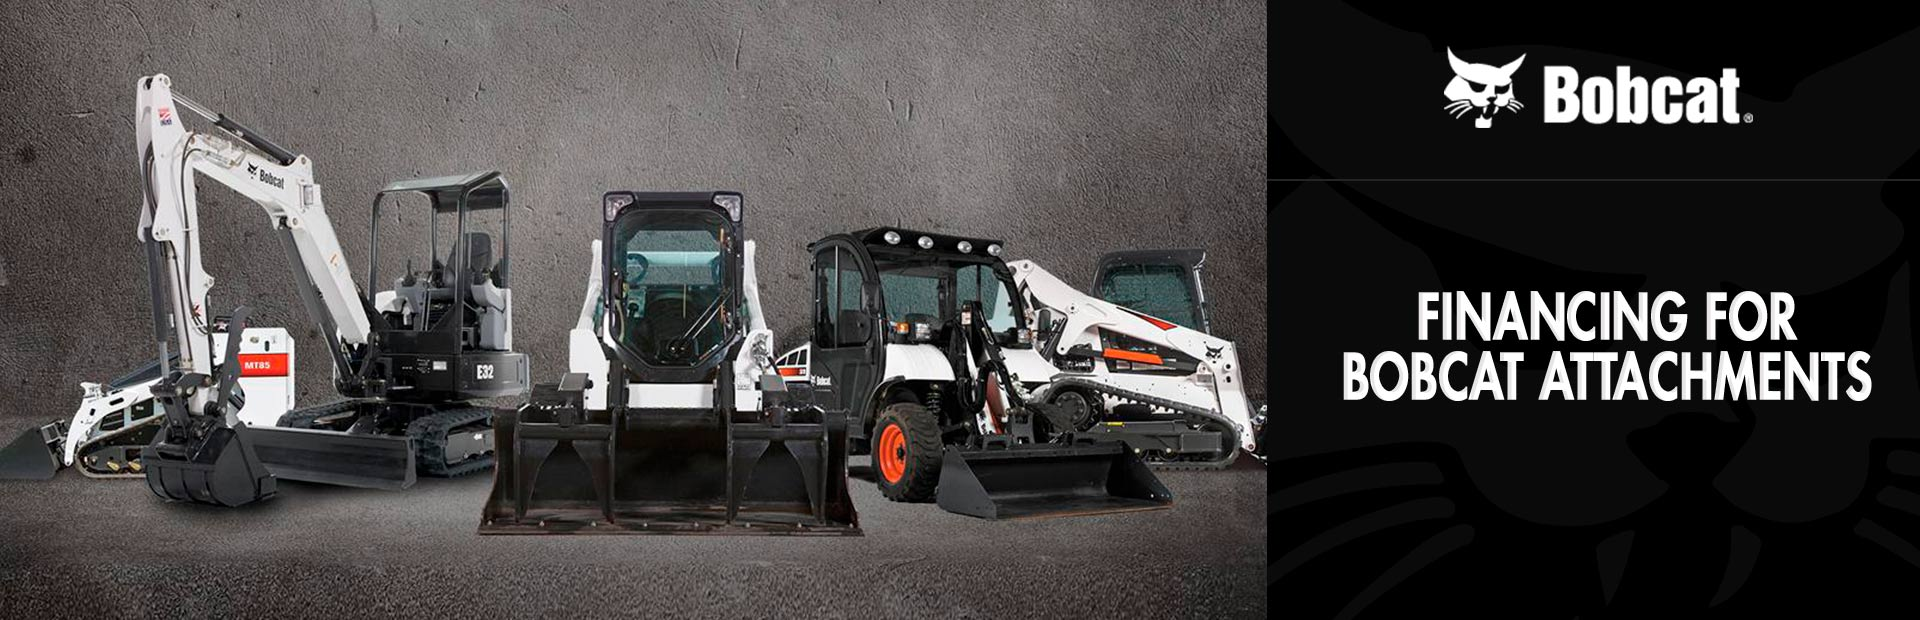 Bobcat: Financing for Bobcat Attachments